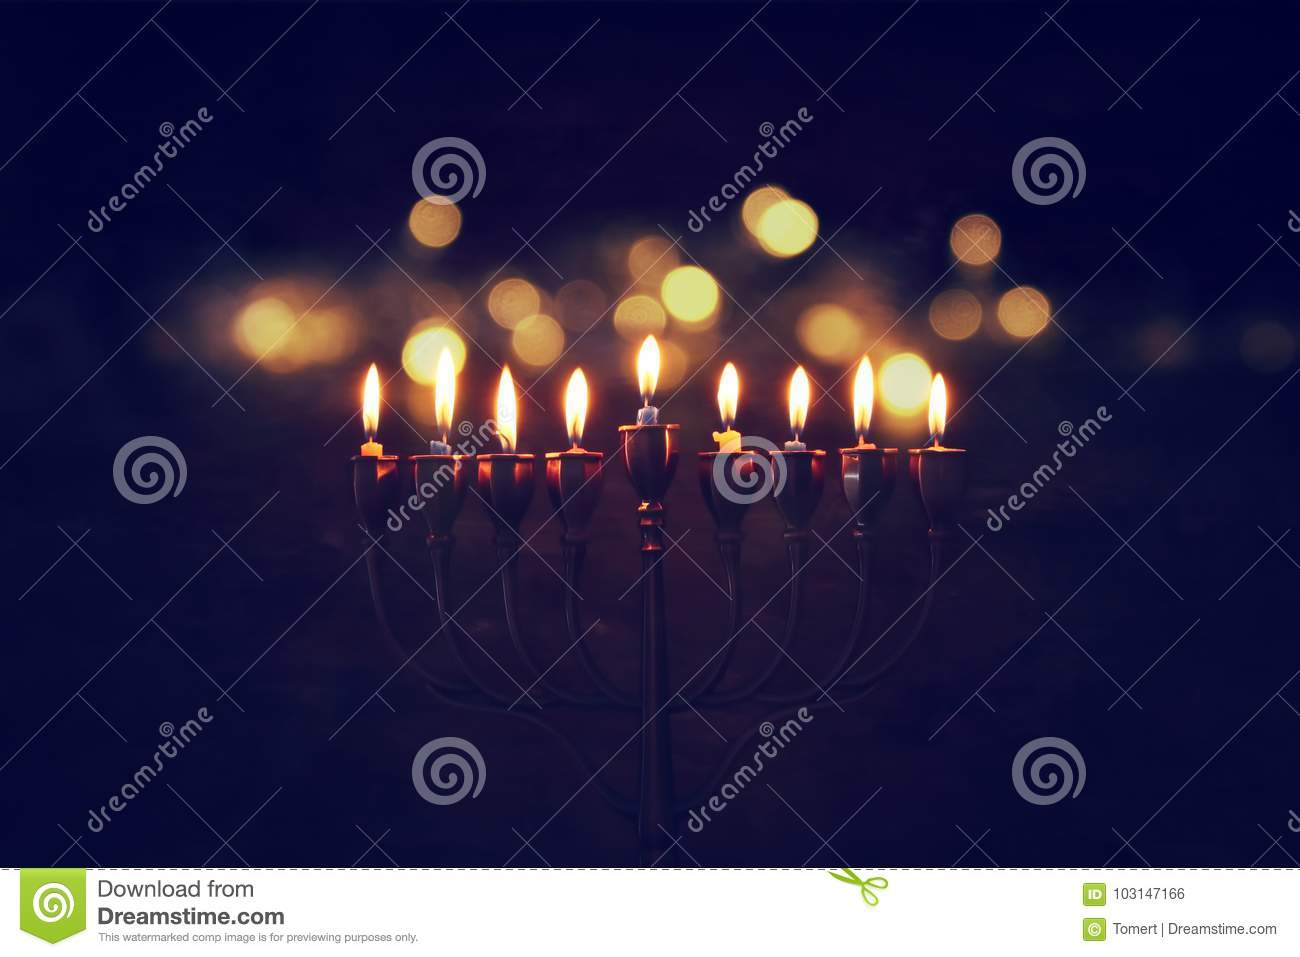 Low key image of jewish holiday Hanukkah background with menorah & x28;traditional candelabra& x29; and burning candles